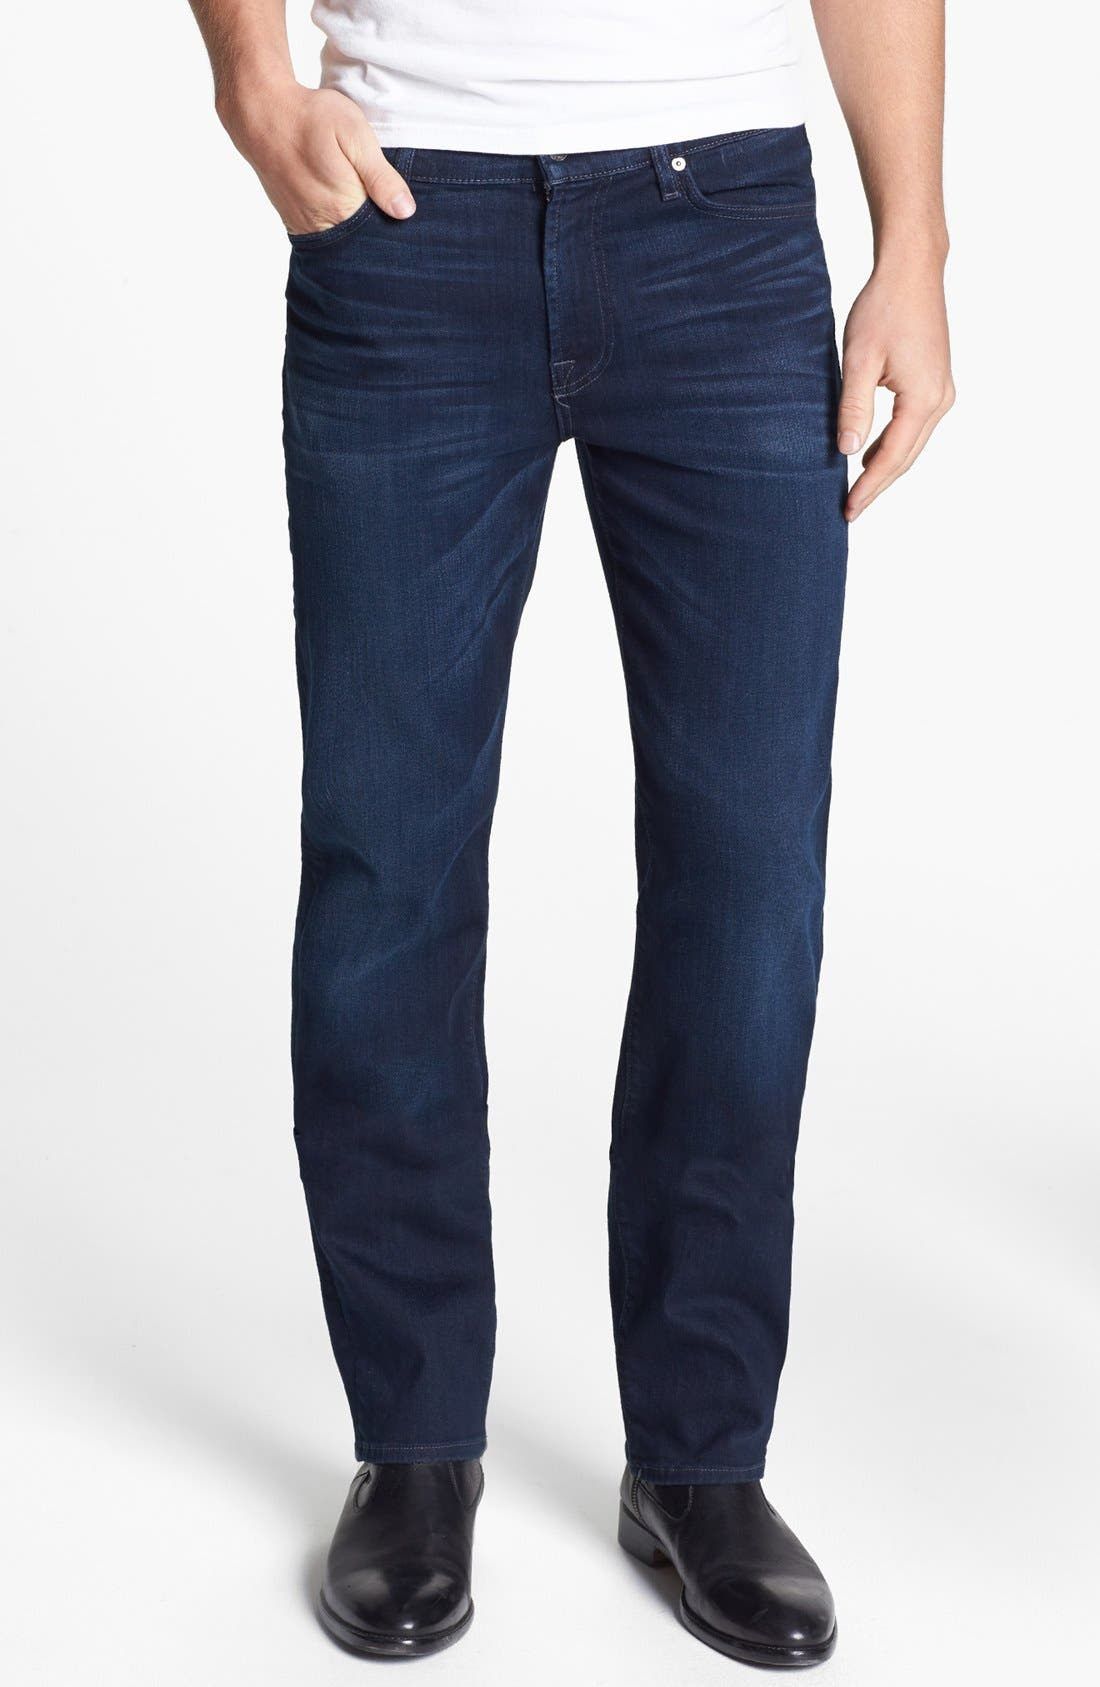 'Slimmy - Luxe Performance' Slim Fit Jeans,                         Main,                         color, Blue Ice